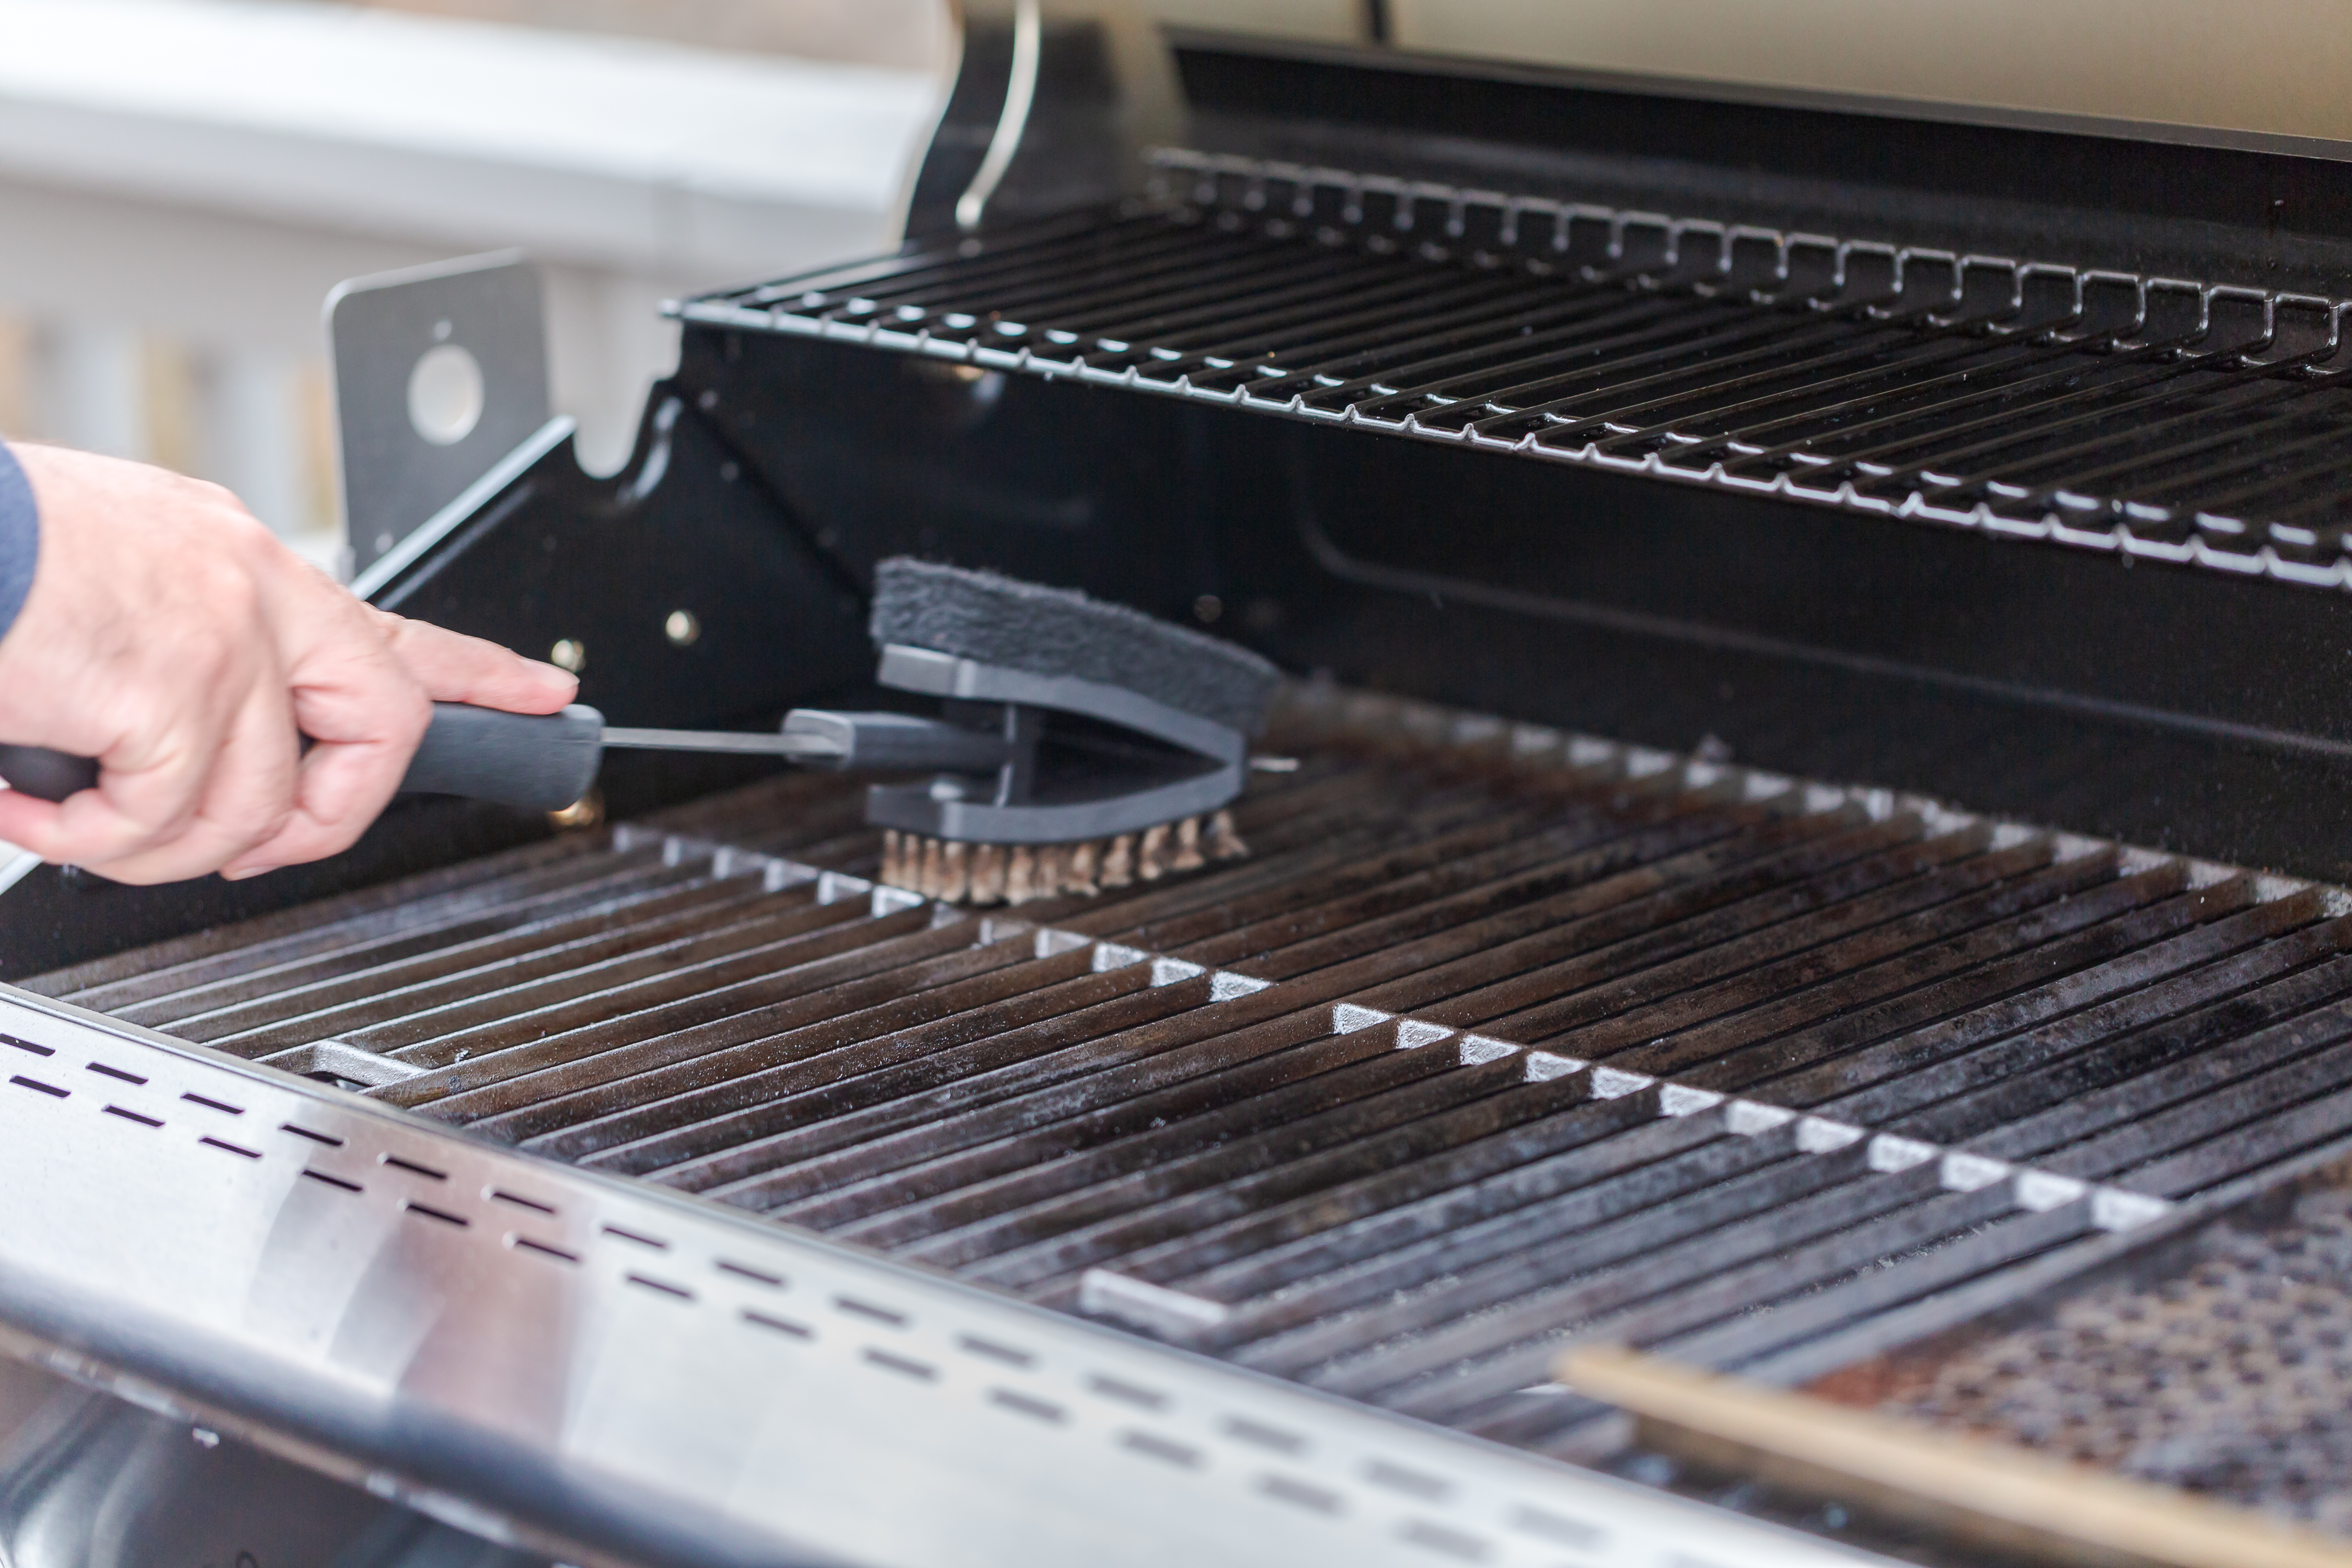 How To Clean Grill Grates With Oven Cleaner Home Guides Sf Gate